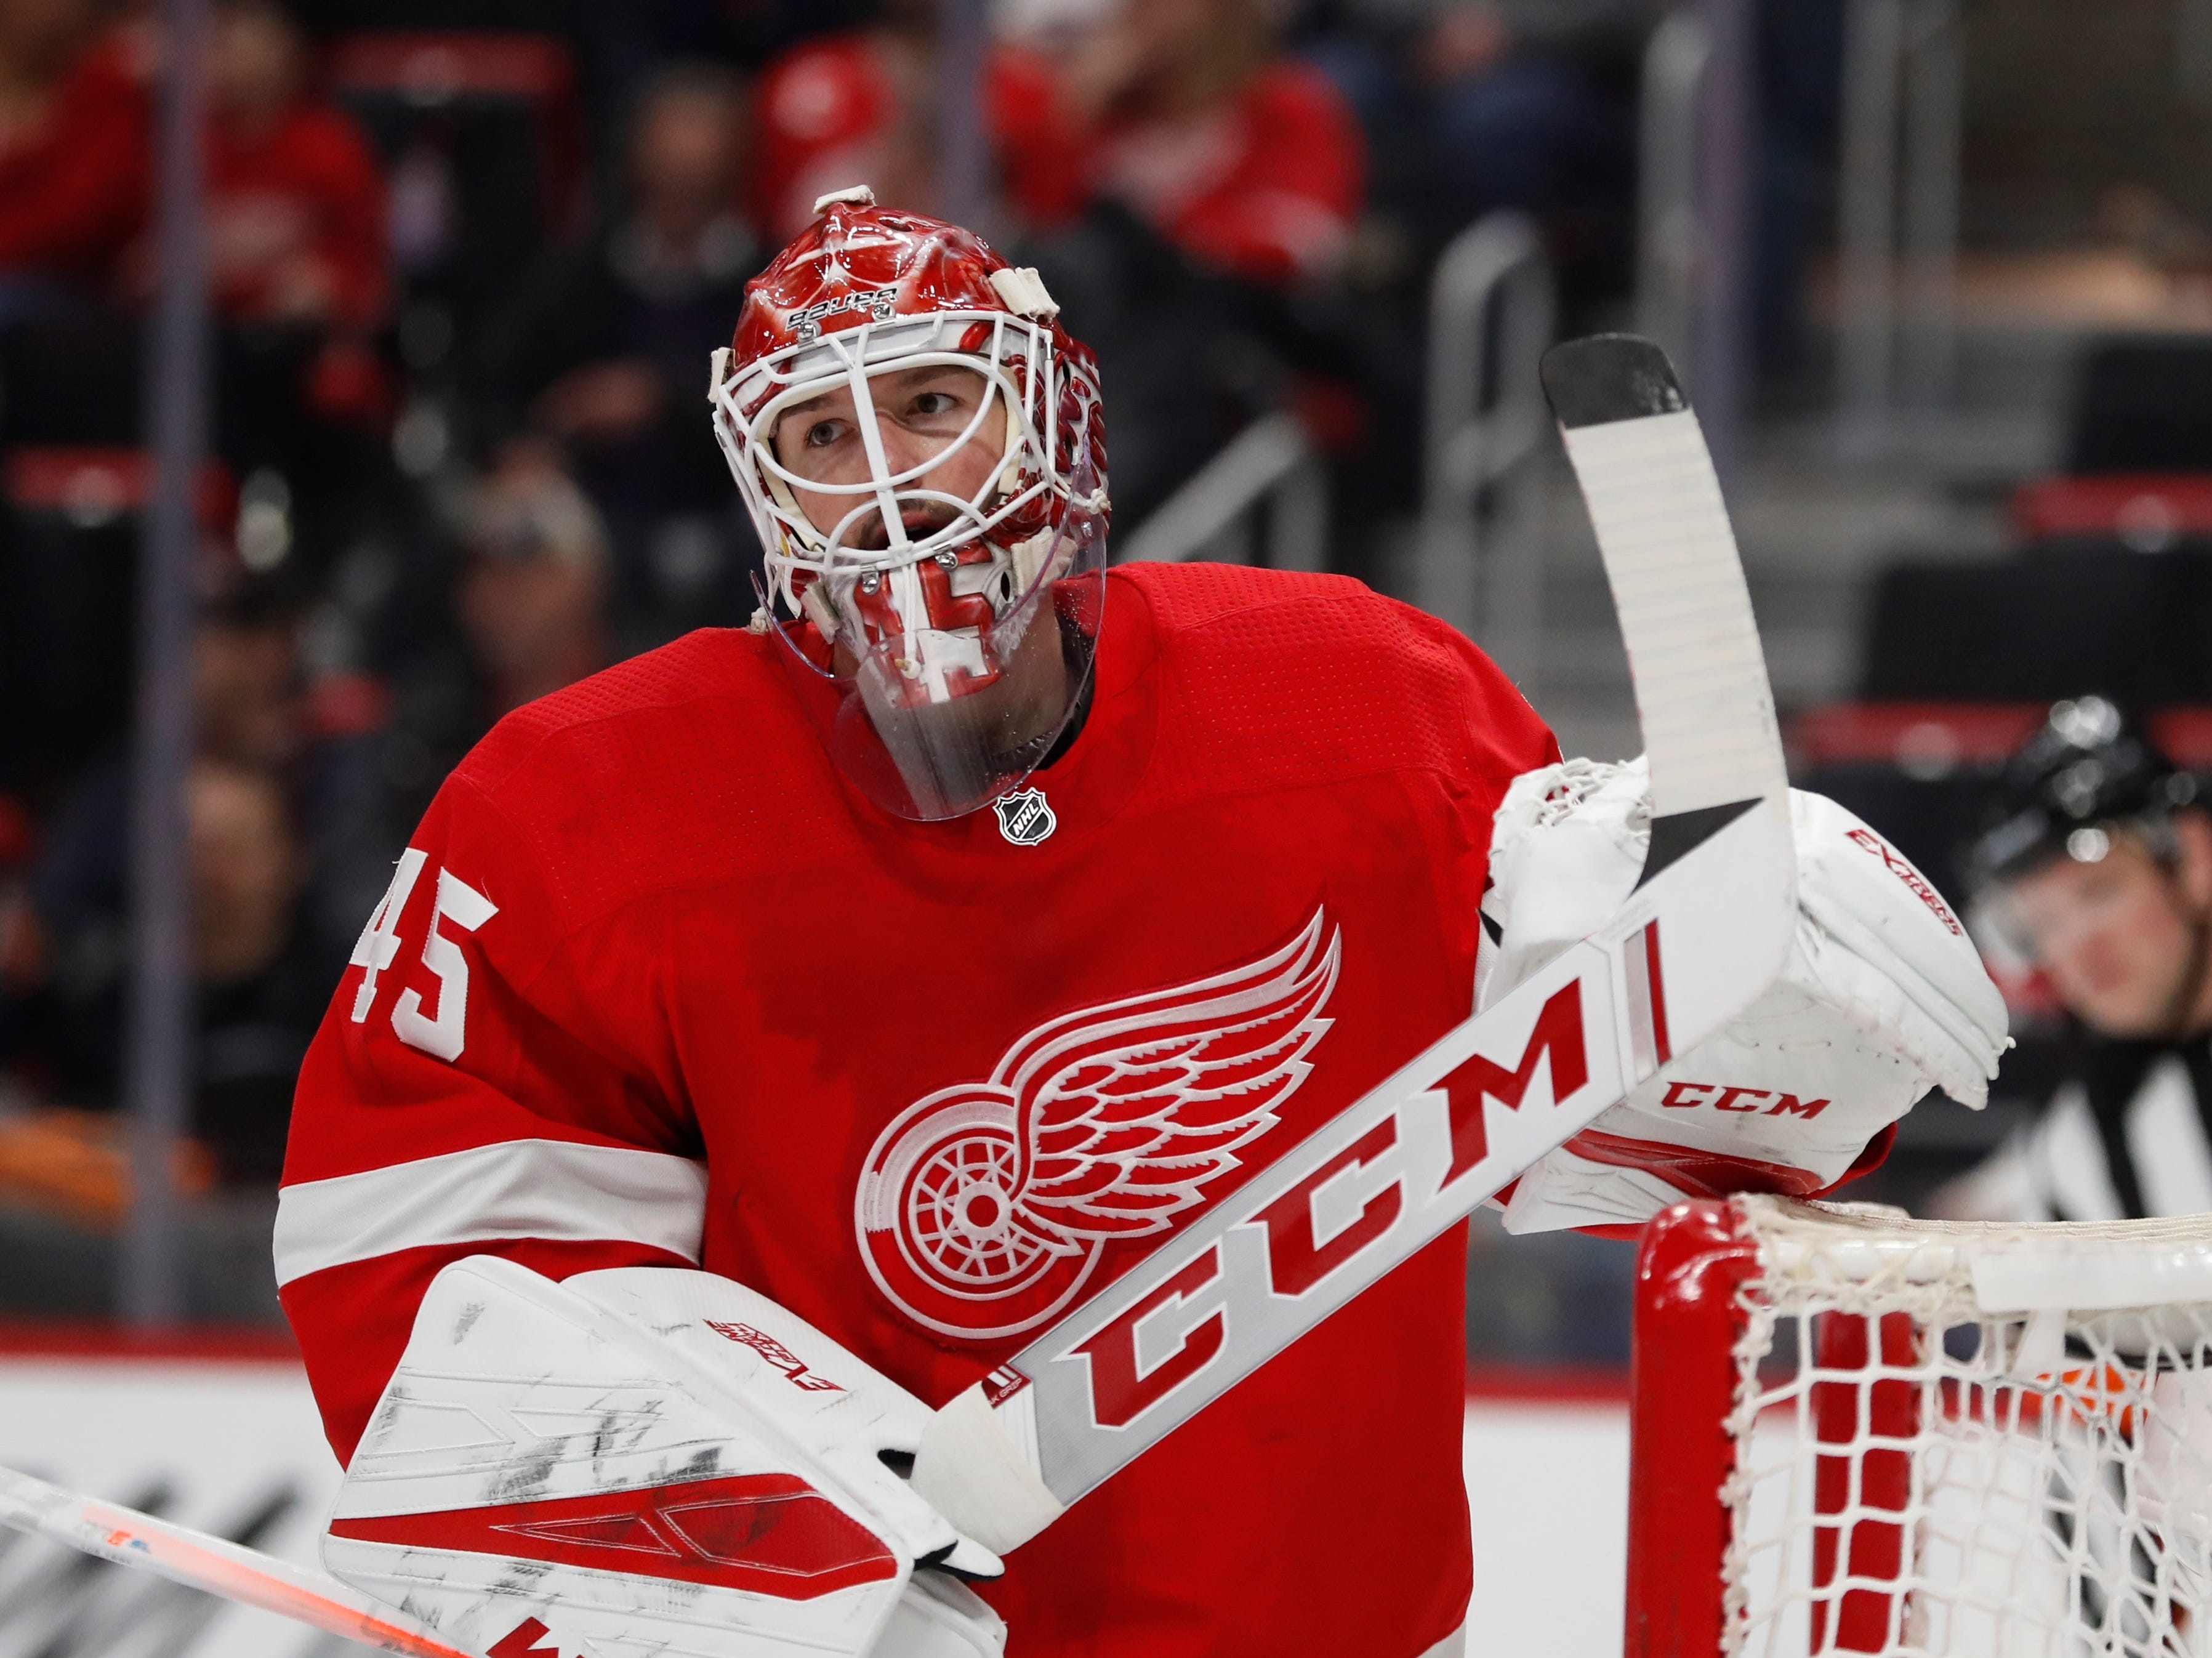 Detroit Red Wings goaltender Jonathan Bernier waits for play to resume after giving up a goal to Minnesota Wild center Eric Staal during the second period of an NHL hockey game, Friday, Feb. 22, 2019, in Detroit.